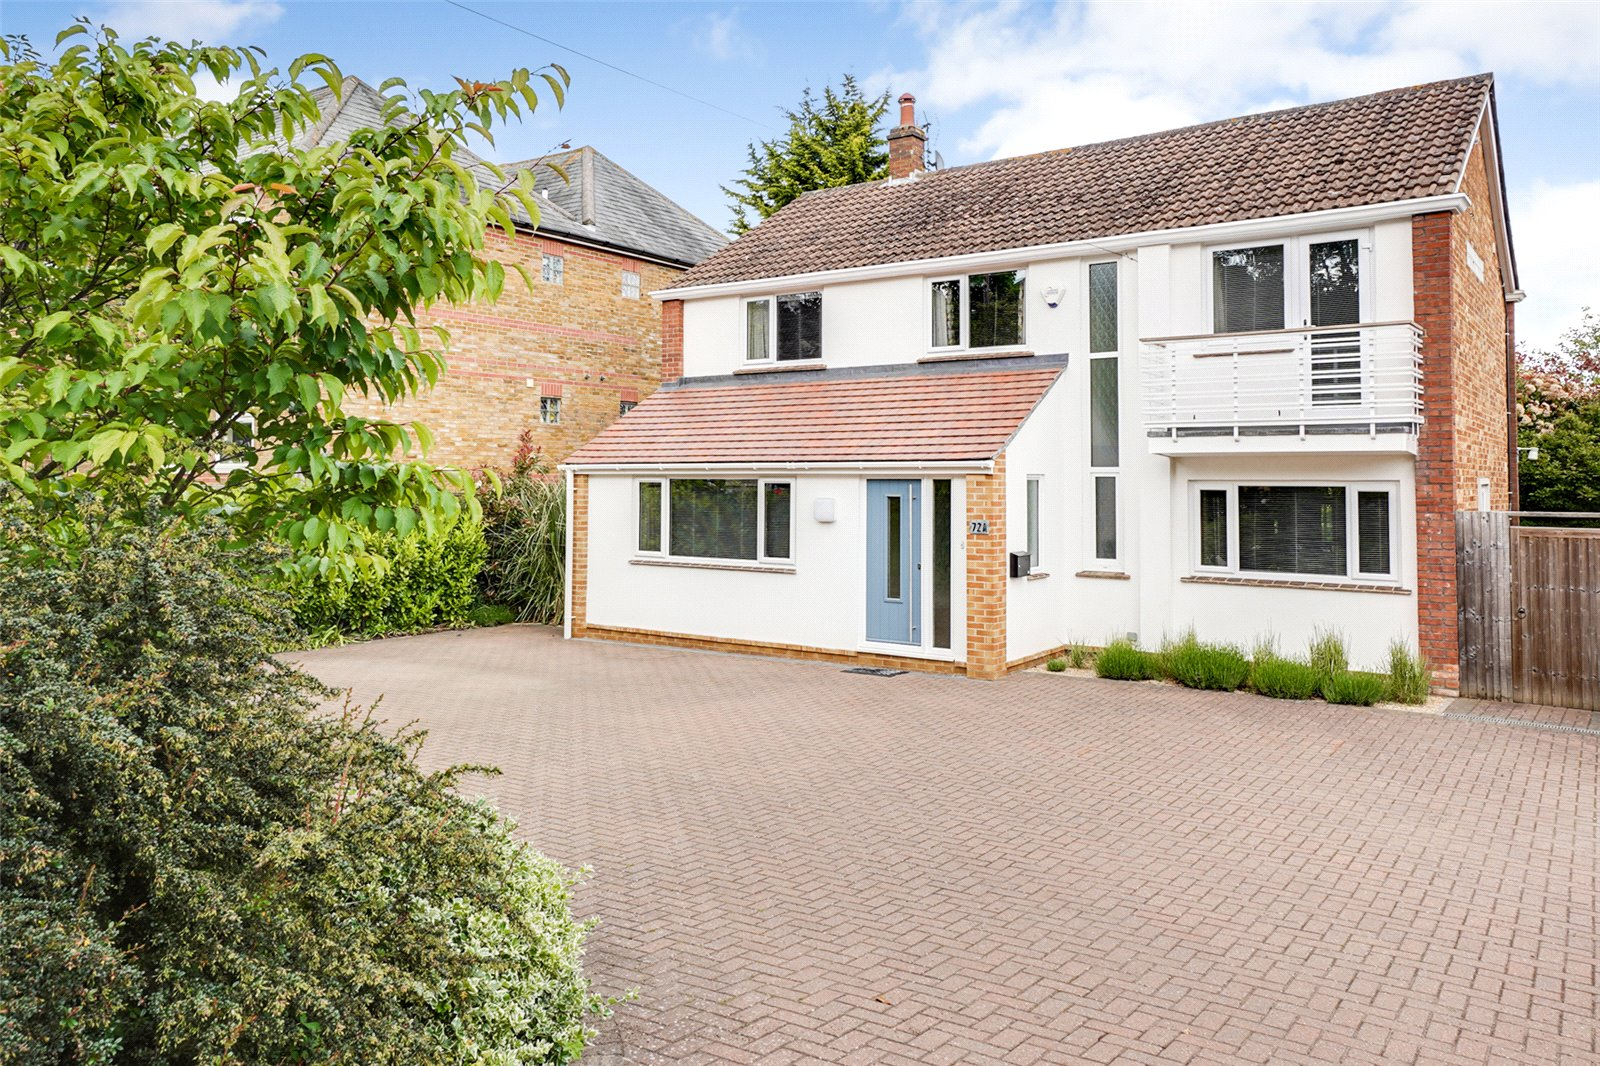 4 bed  for sale in London Road, Maidstone, ME16